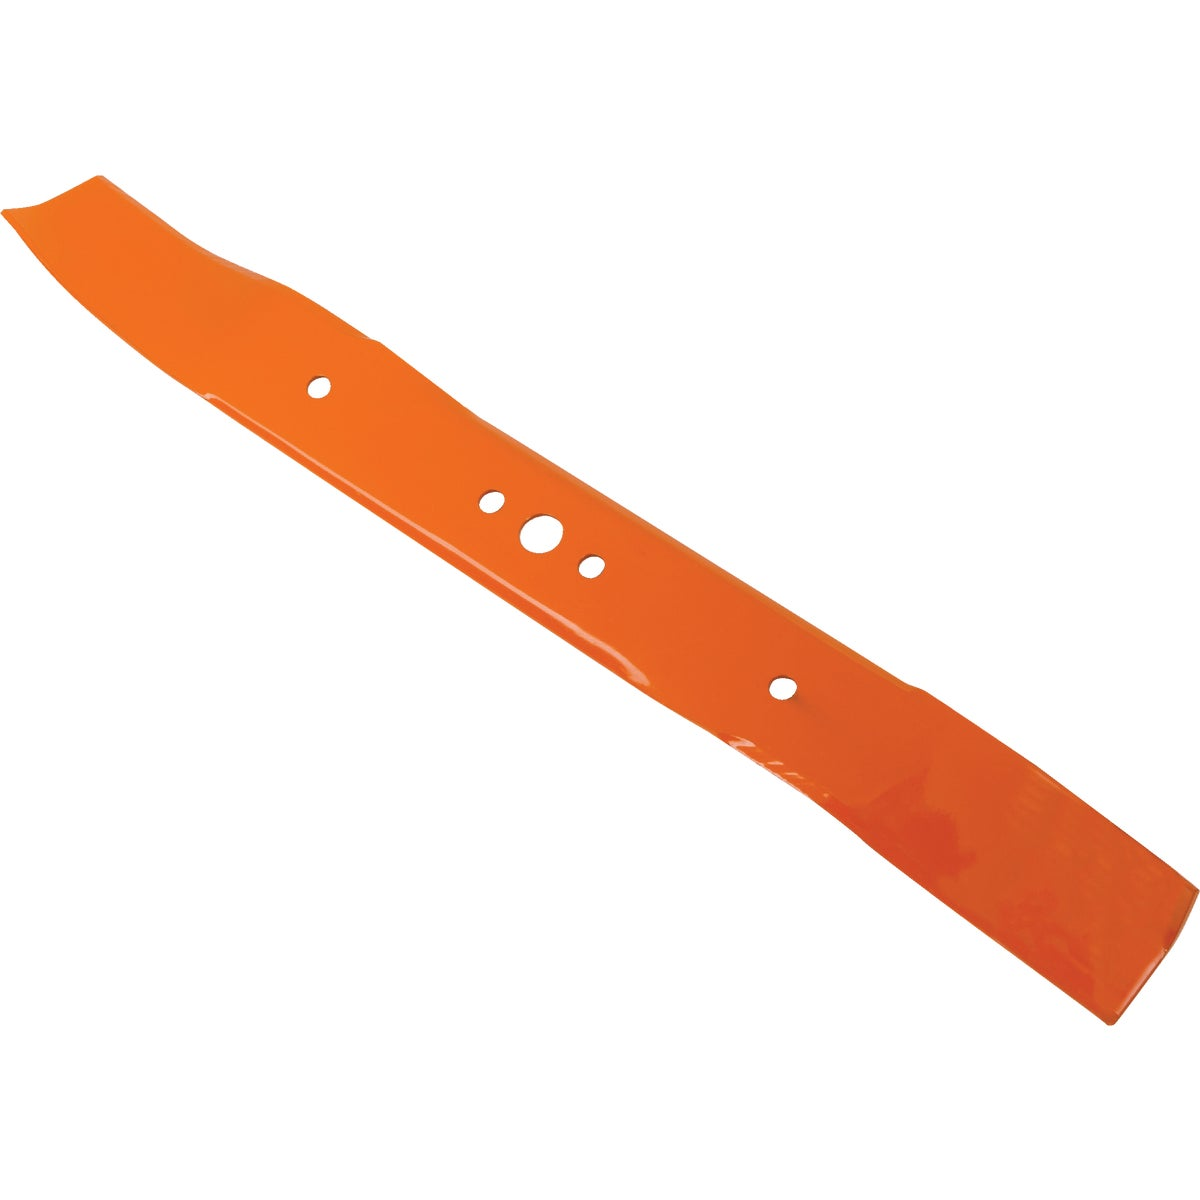 "21"" LAWN MOWER BLADE - 581694101 by Husqvarna Outdoor"